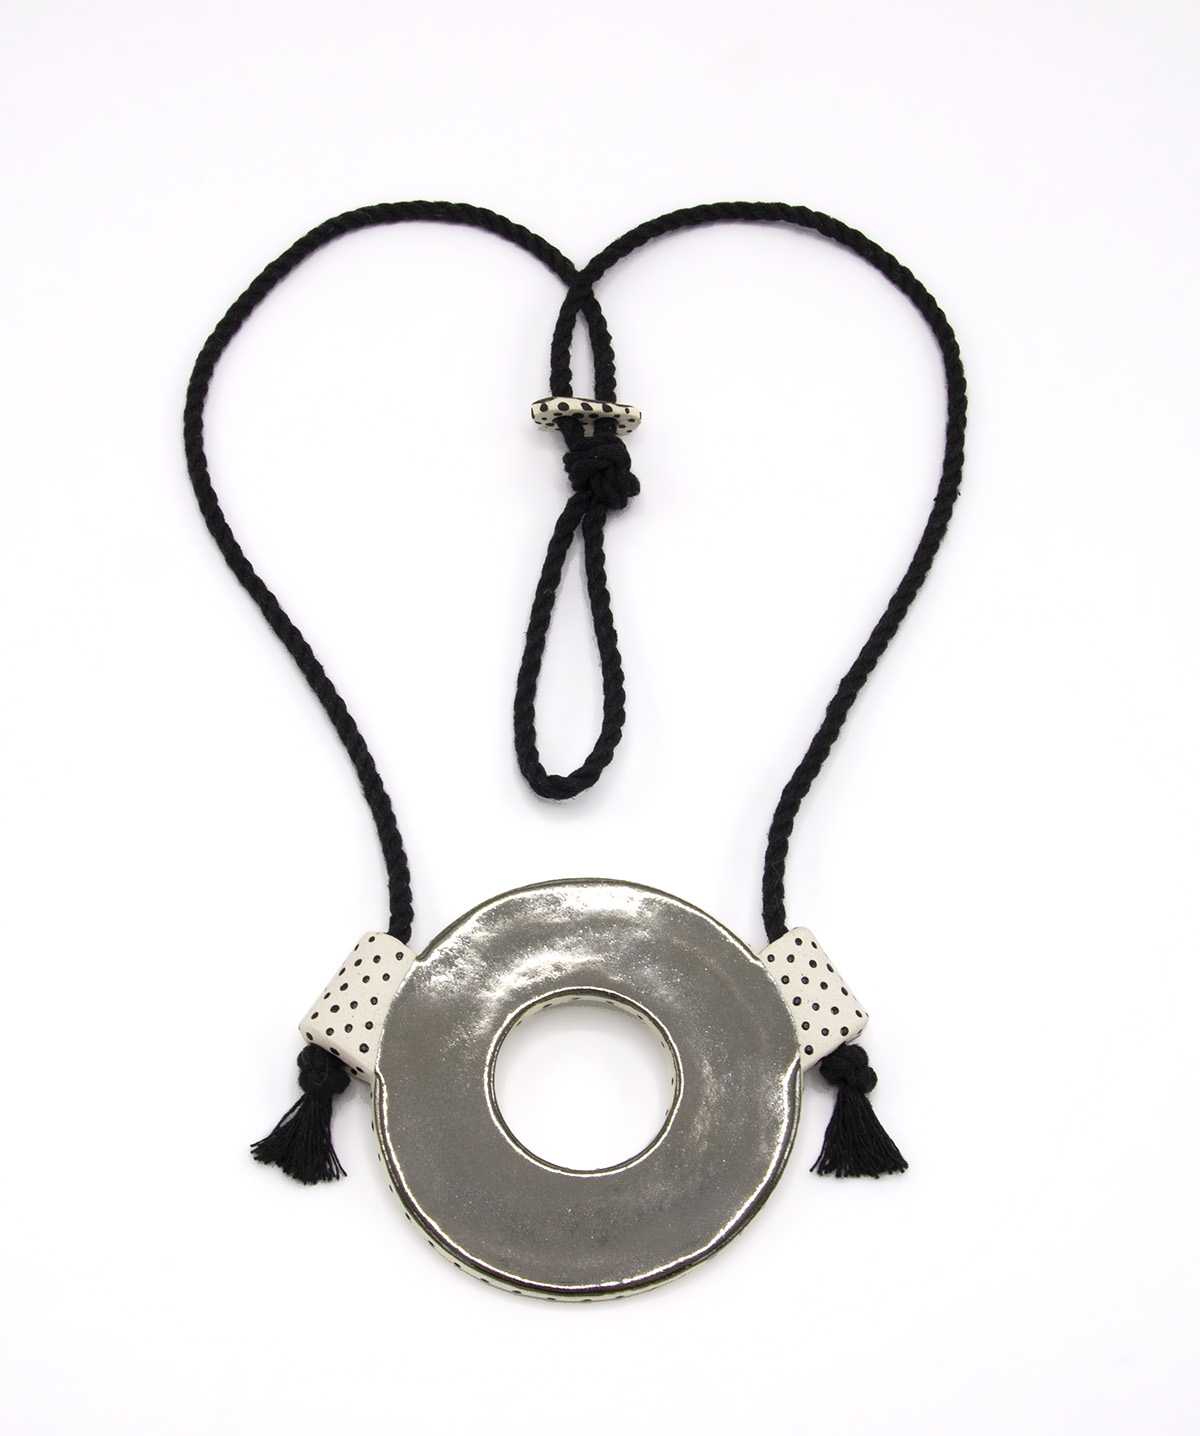 Eroyn Franklin Silver Circle Necklace, 2021 Ceramic and cord